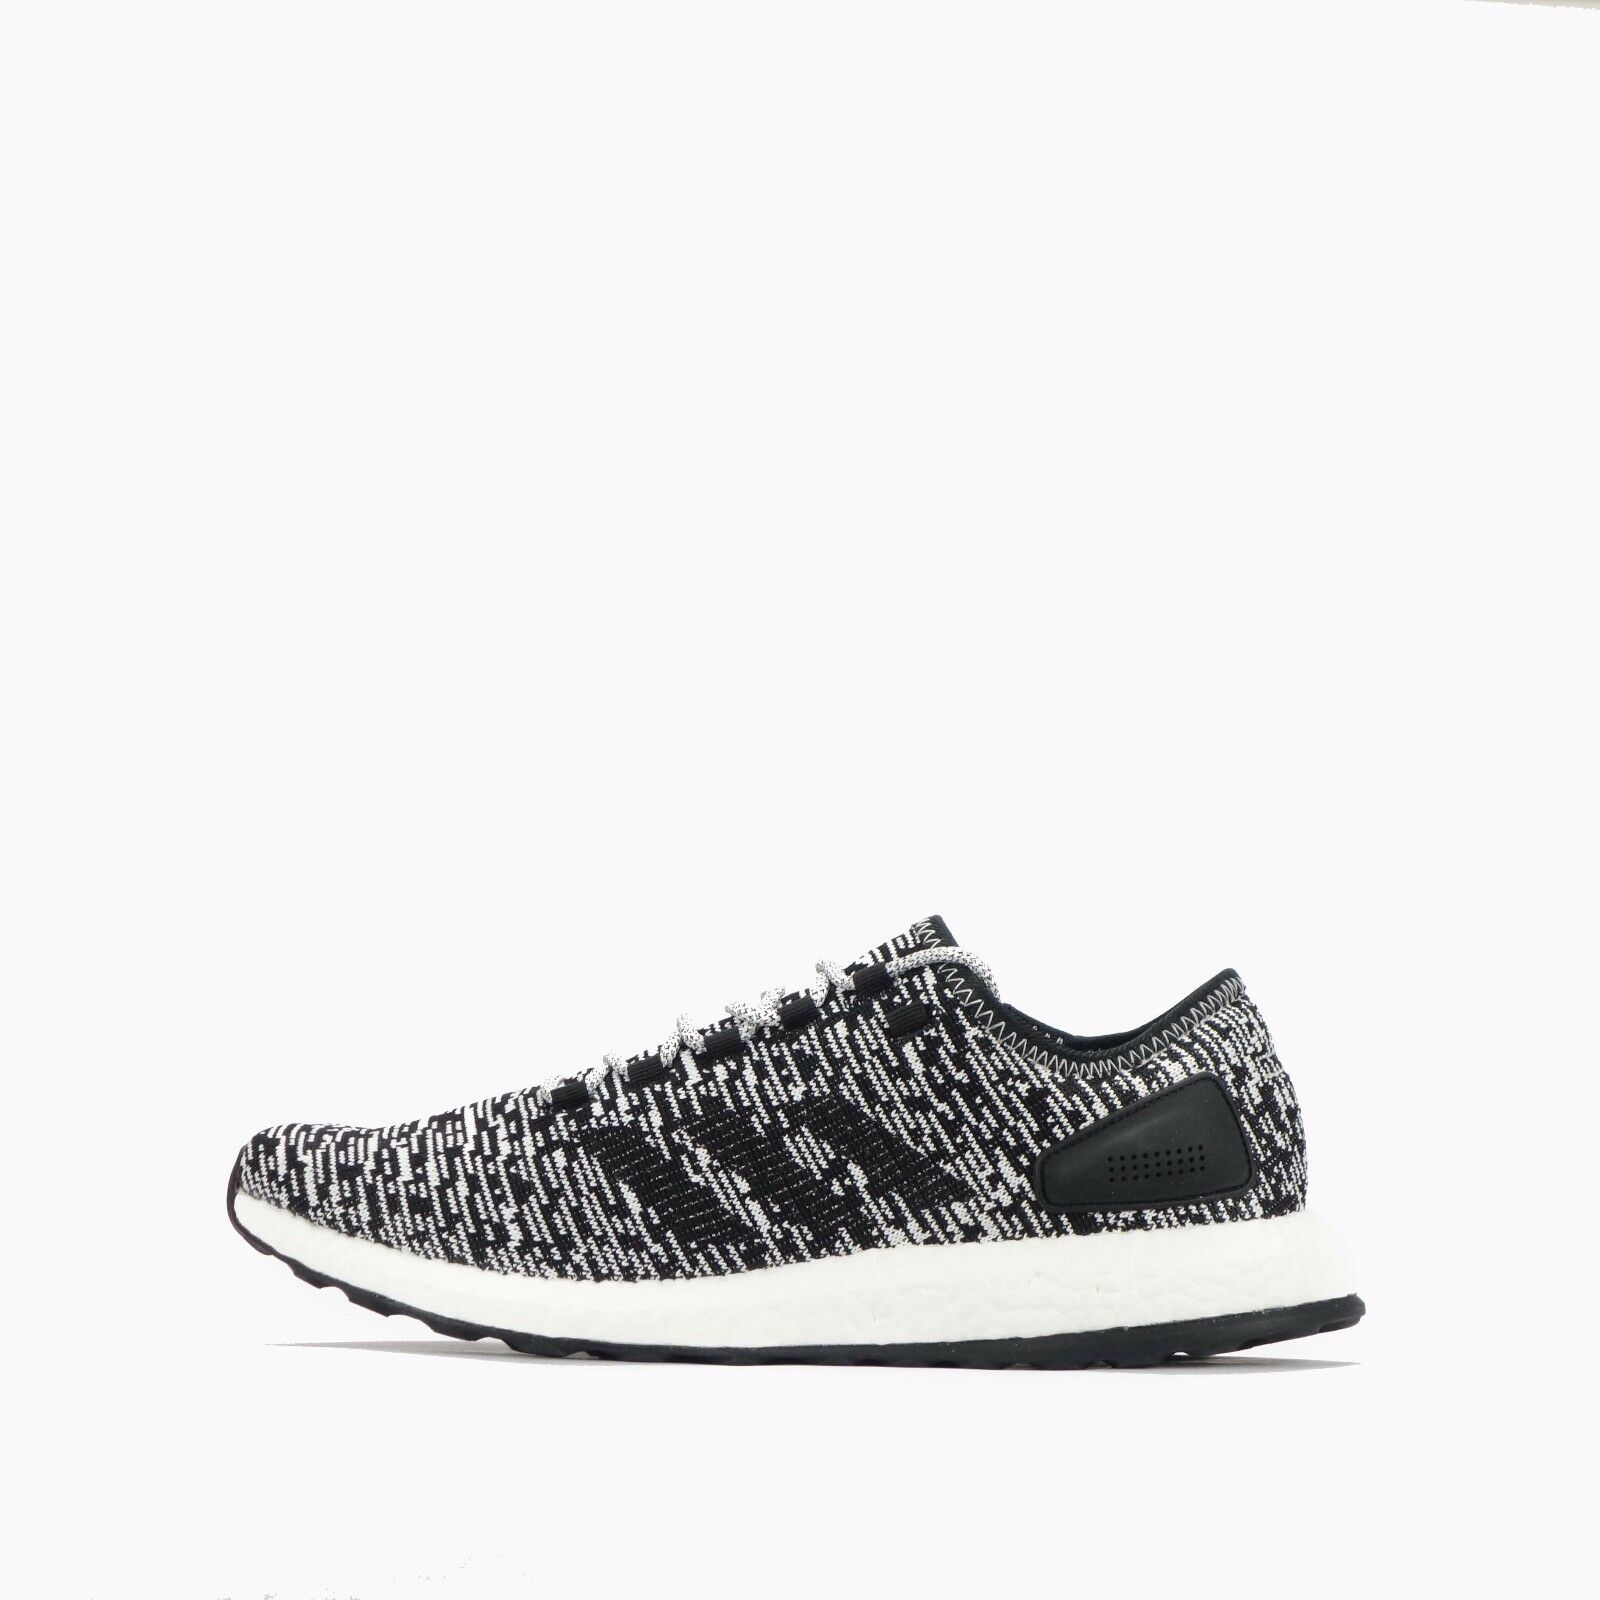 Adidas Pure Boost Mens Running Shoes Core Black/White